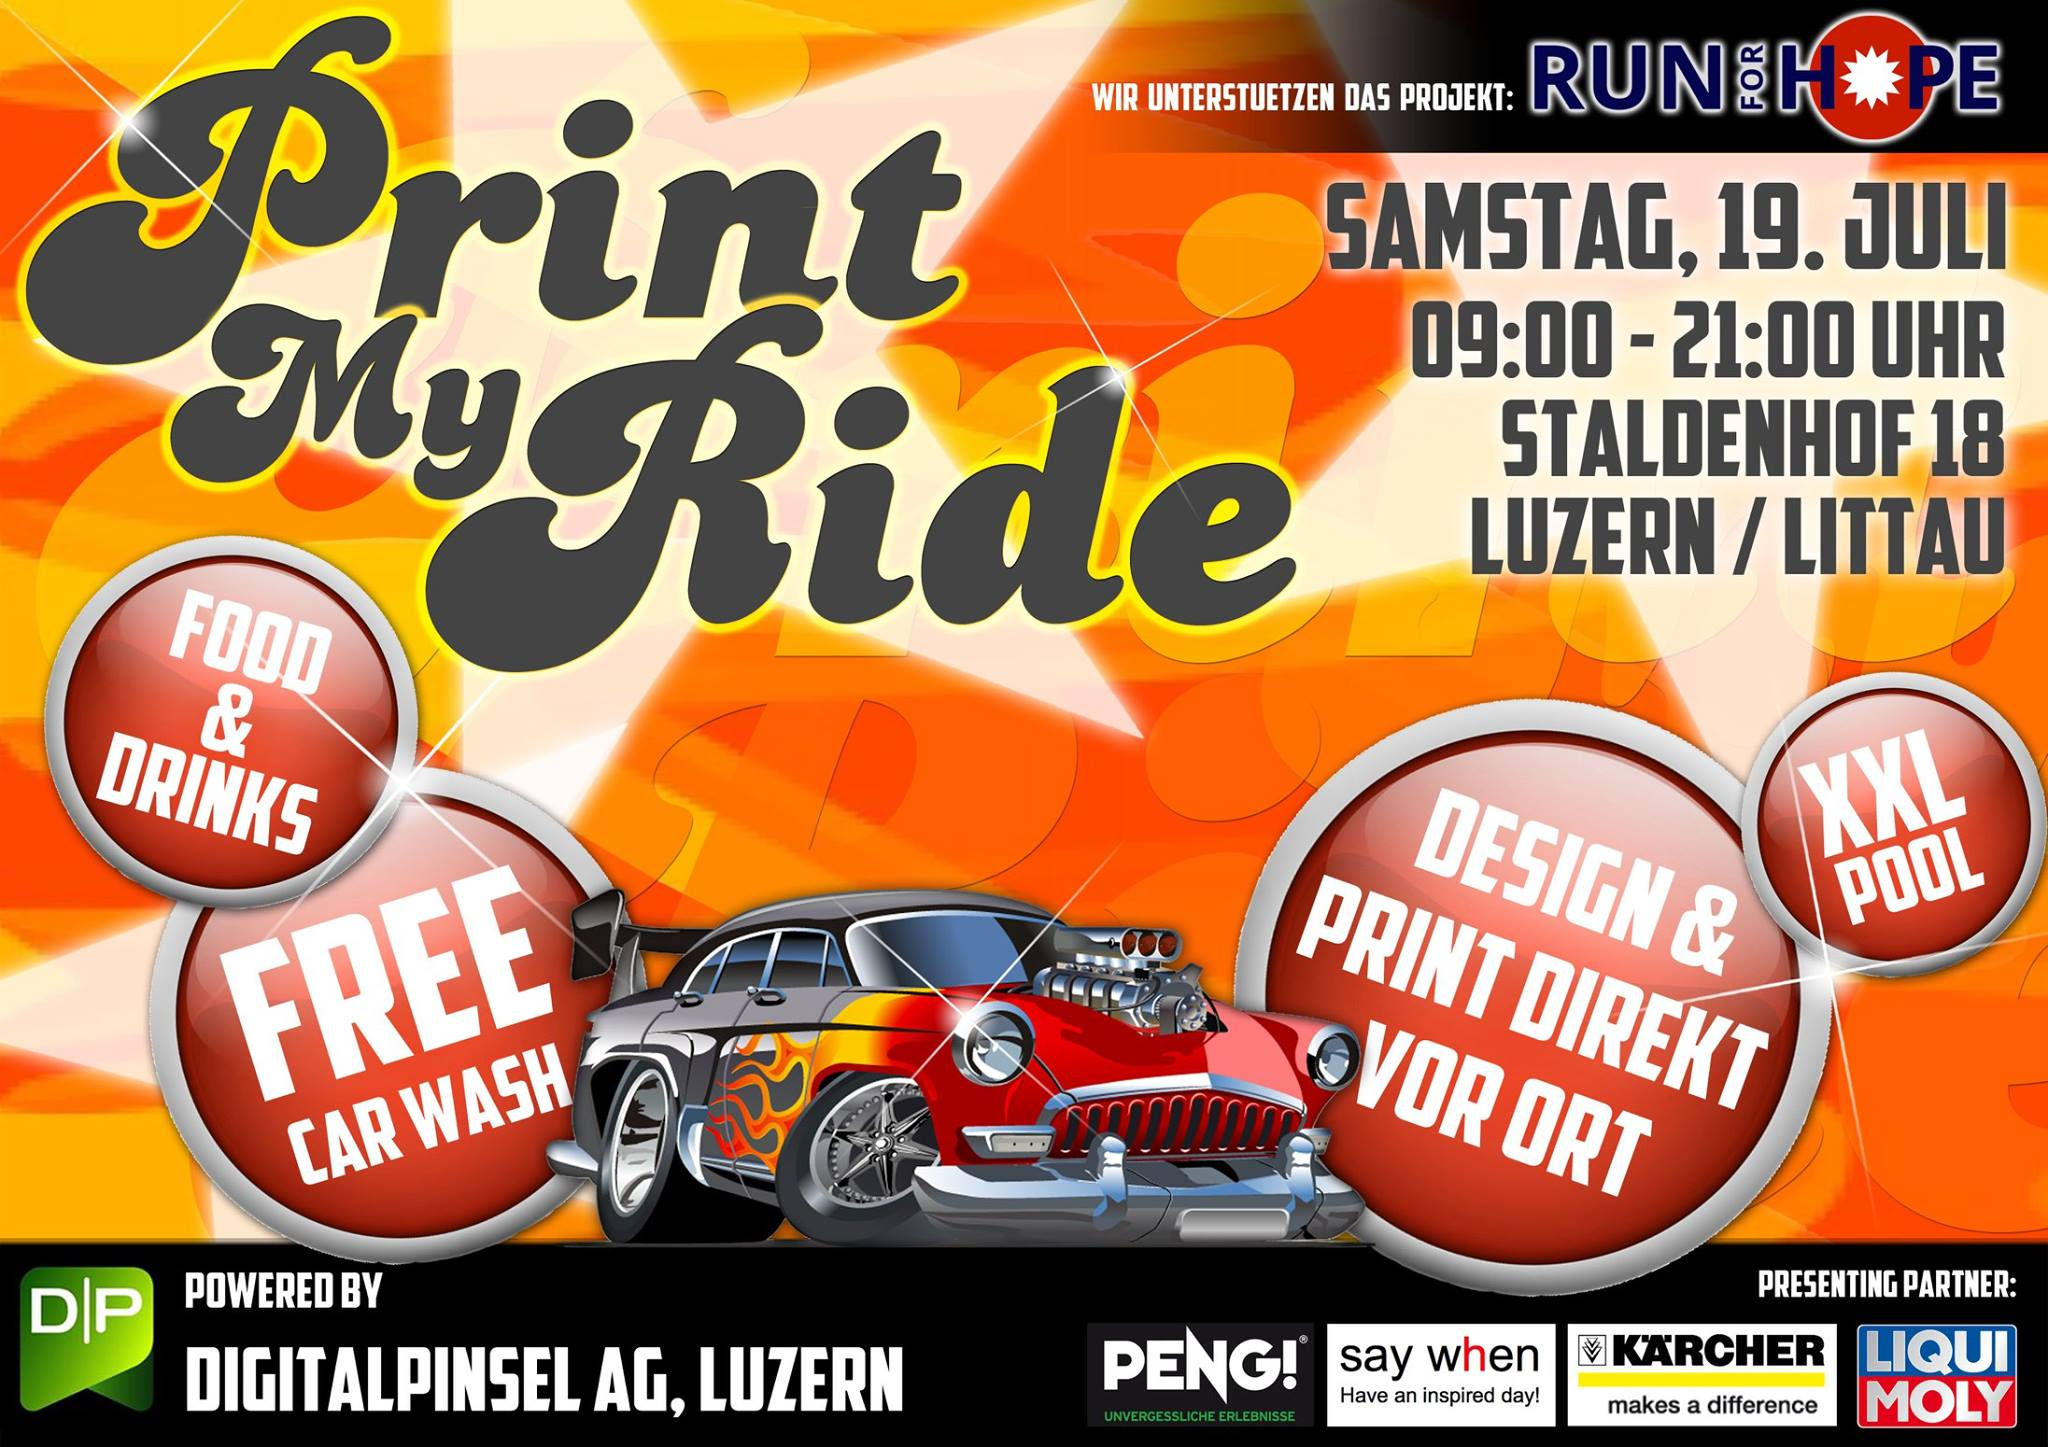 Flyer Print my Ride.jpg